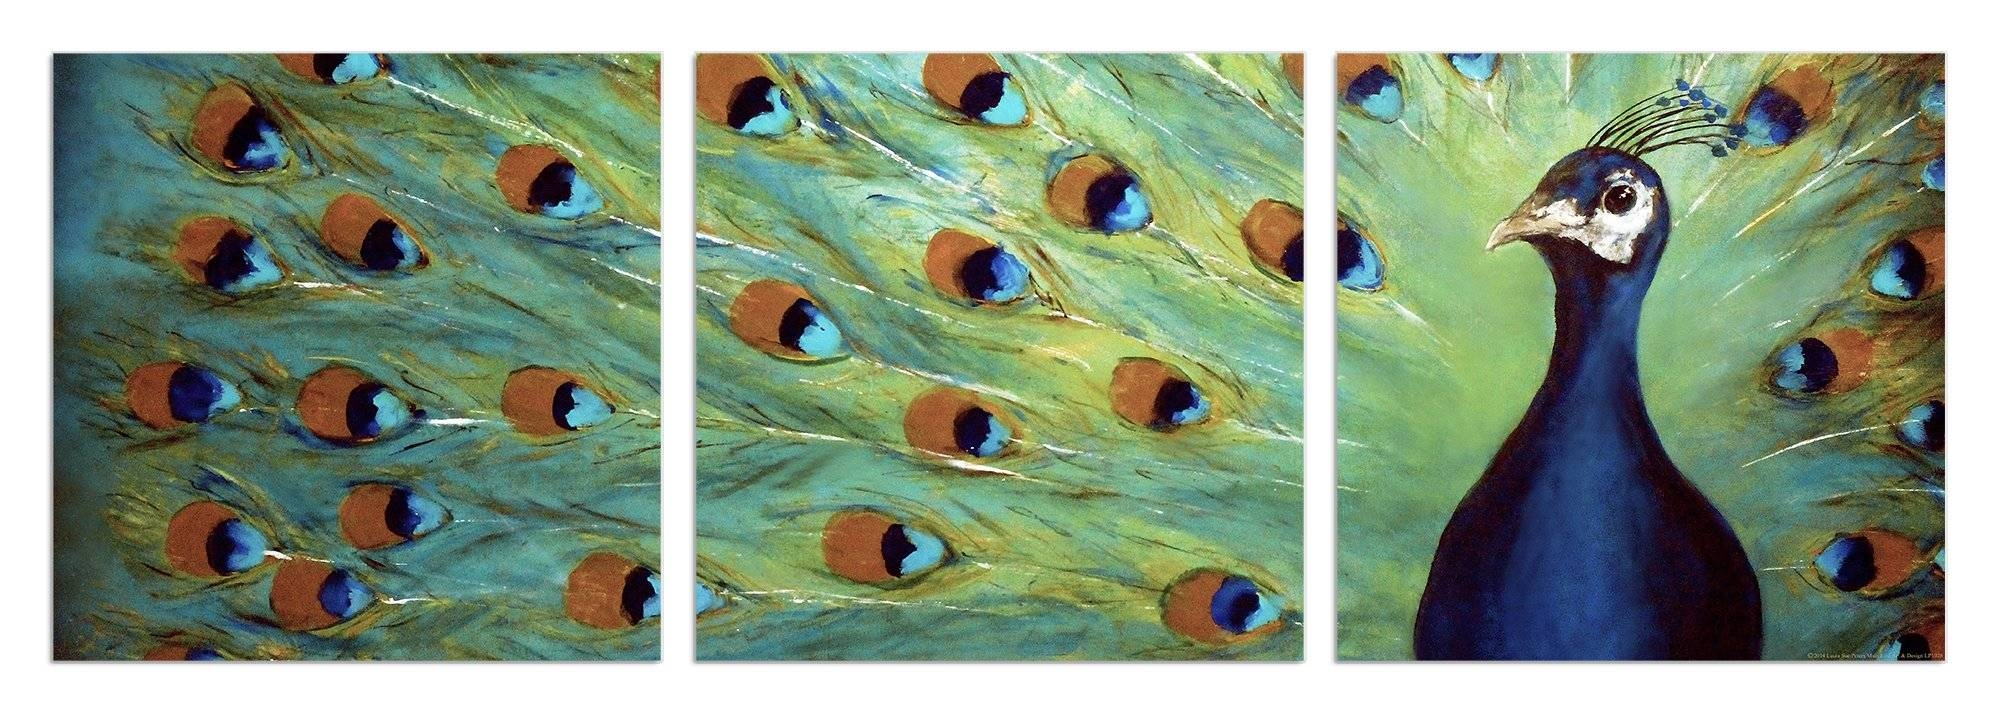 Stupell Industries Prized Peacock 3 Piece Triptych Canvas Wall Art With Regard To Most Up To Date 3 Piece Canvas Wall Art Sets (View 20 of 20)